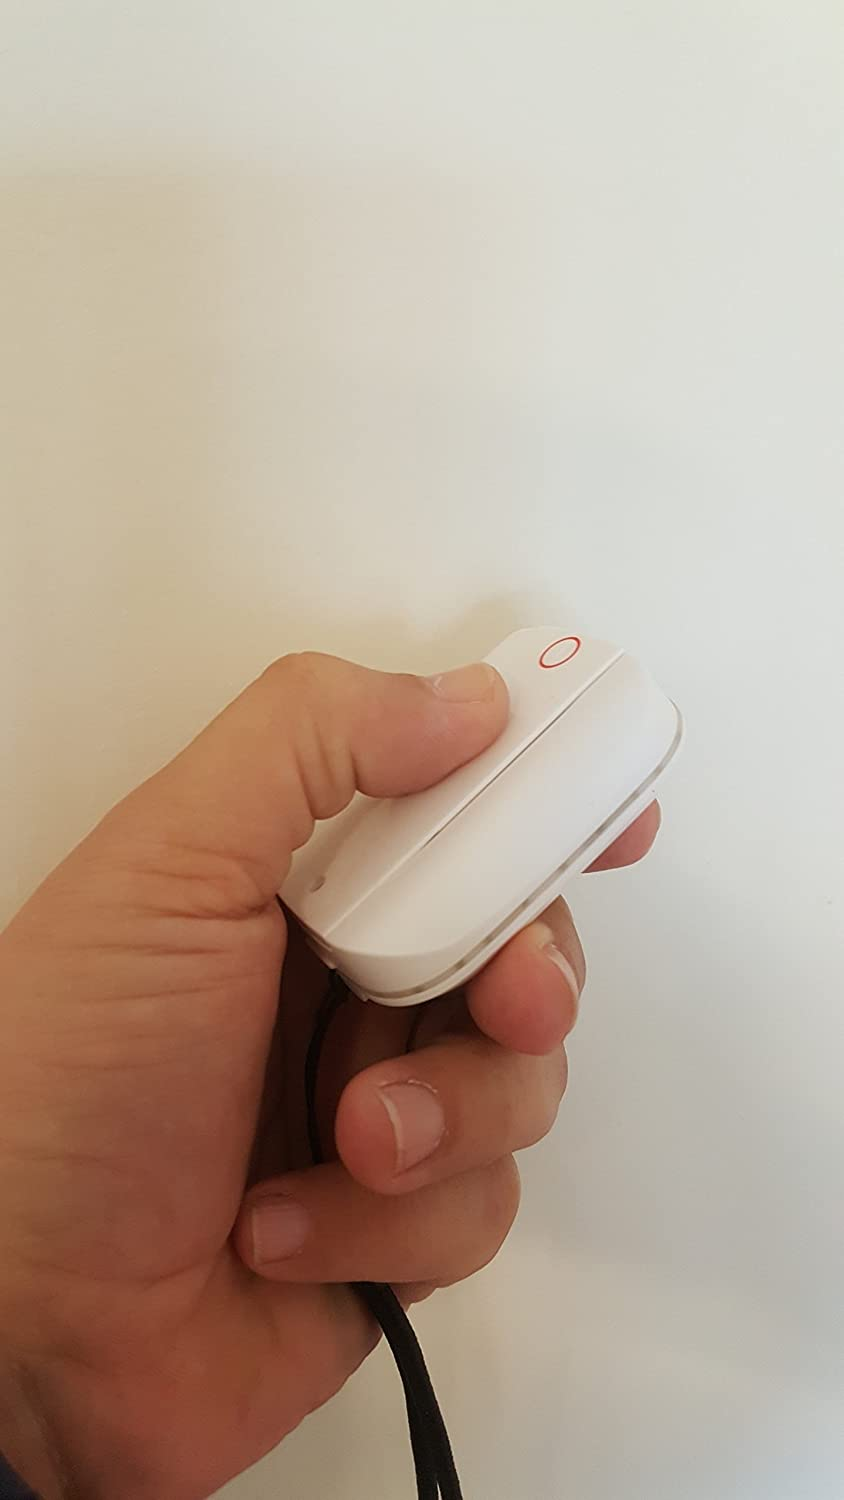 Amazon.com: Alerta Médica Panic Button WiFi – sin cuota ...